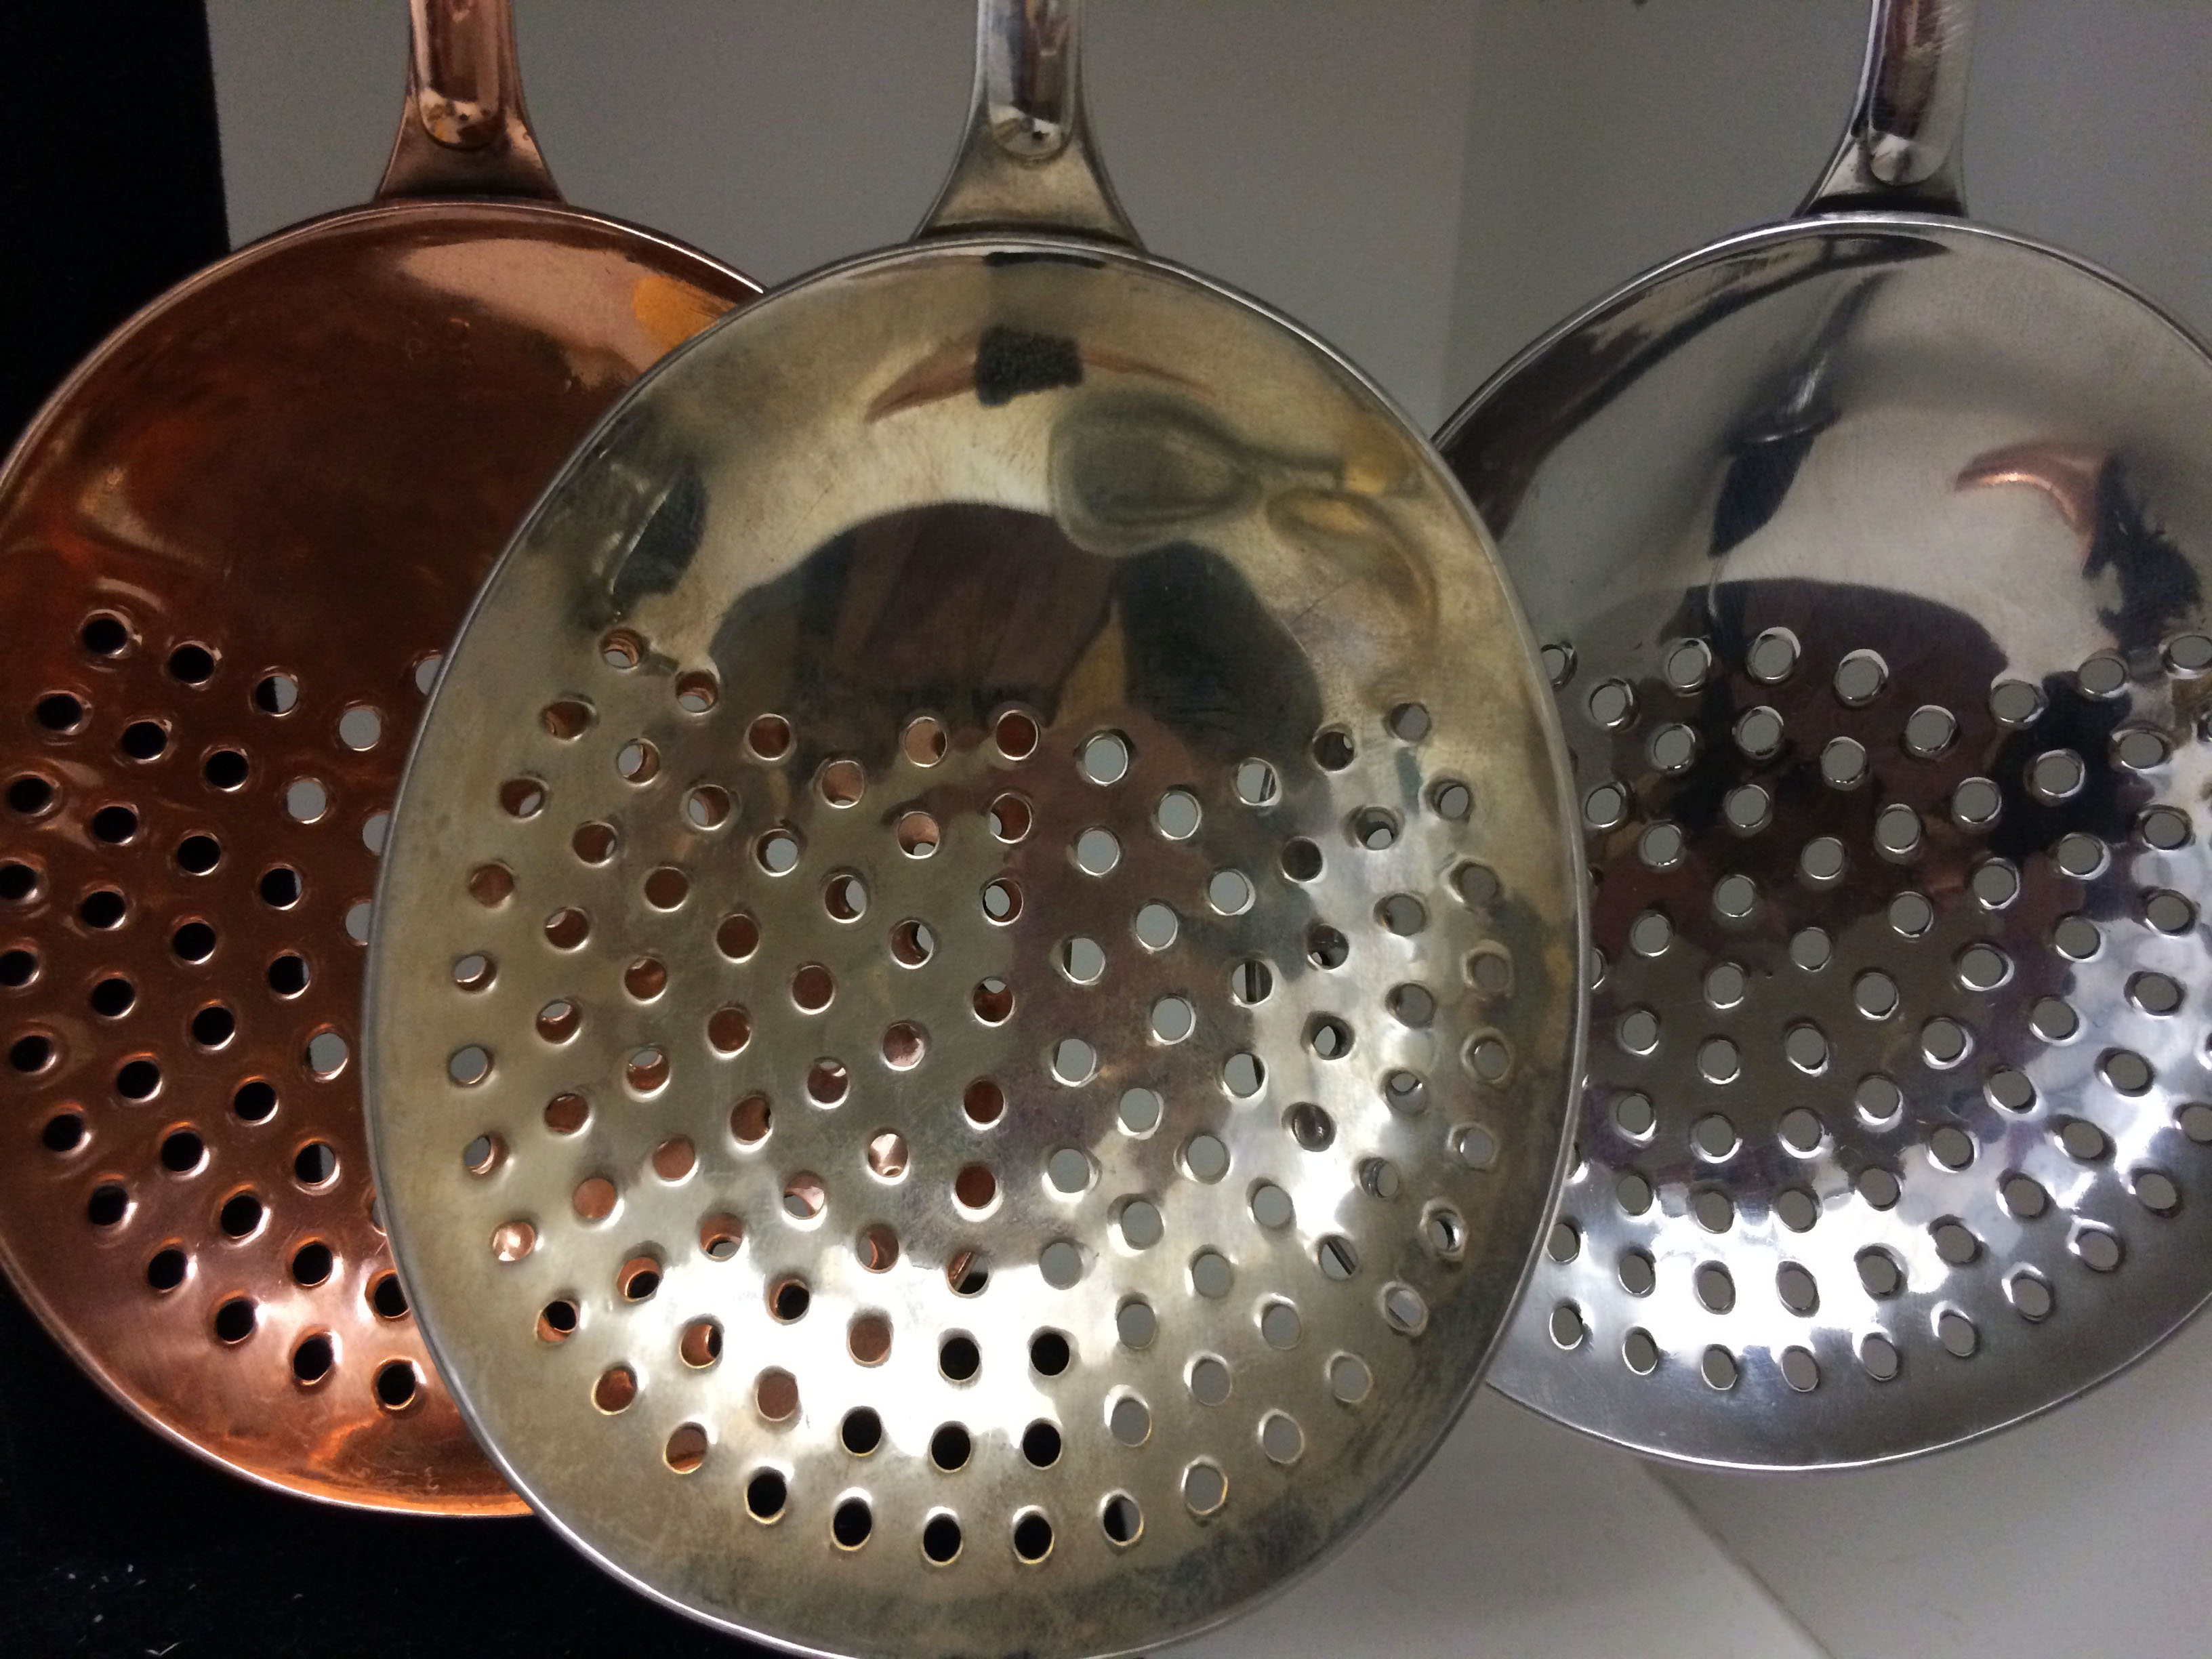 Julep strainers